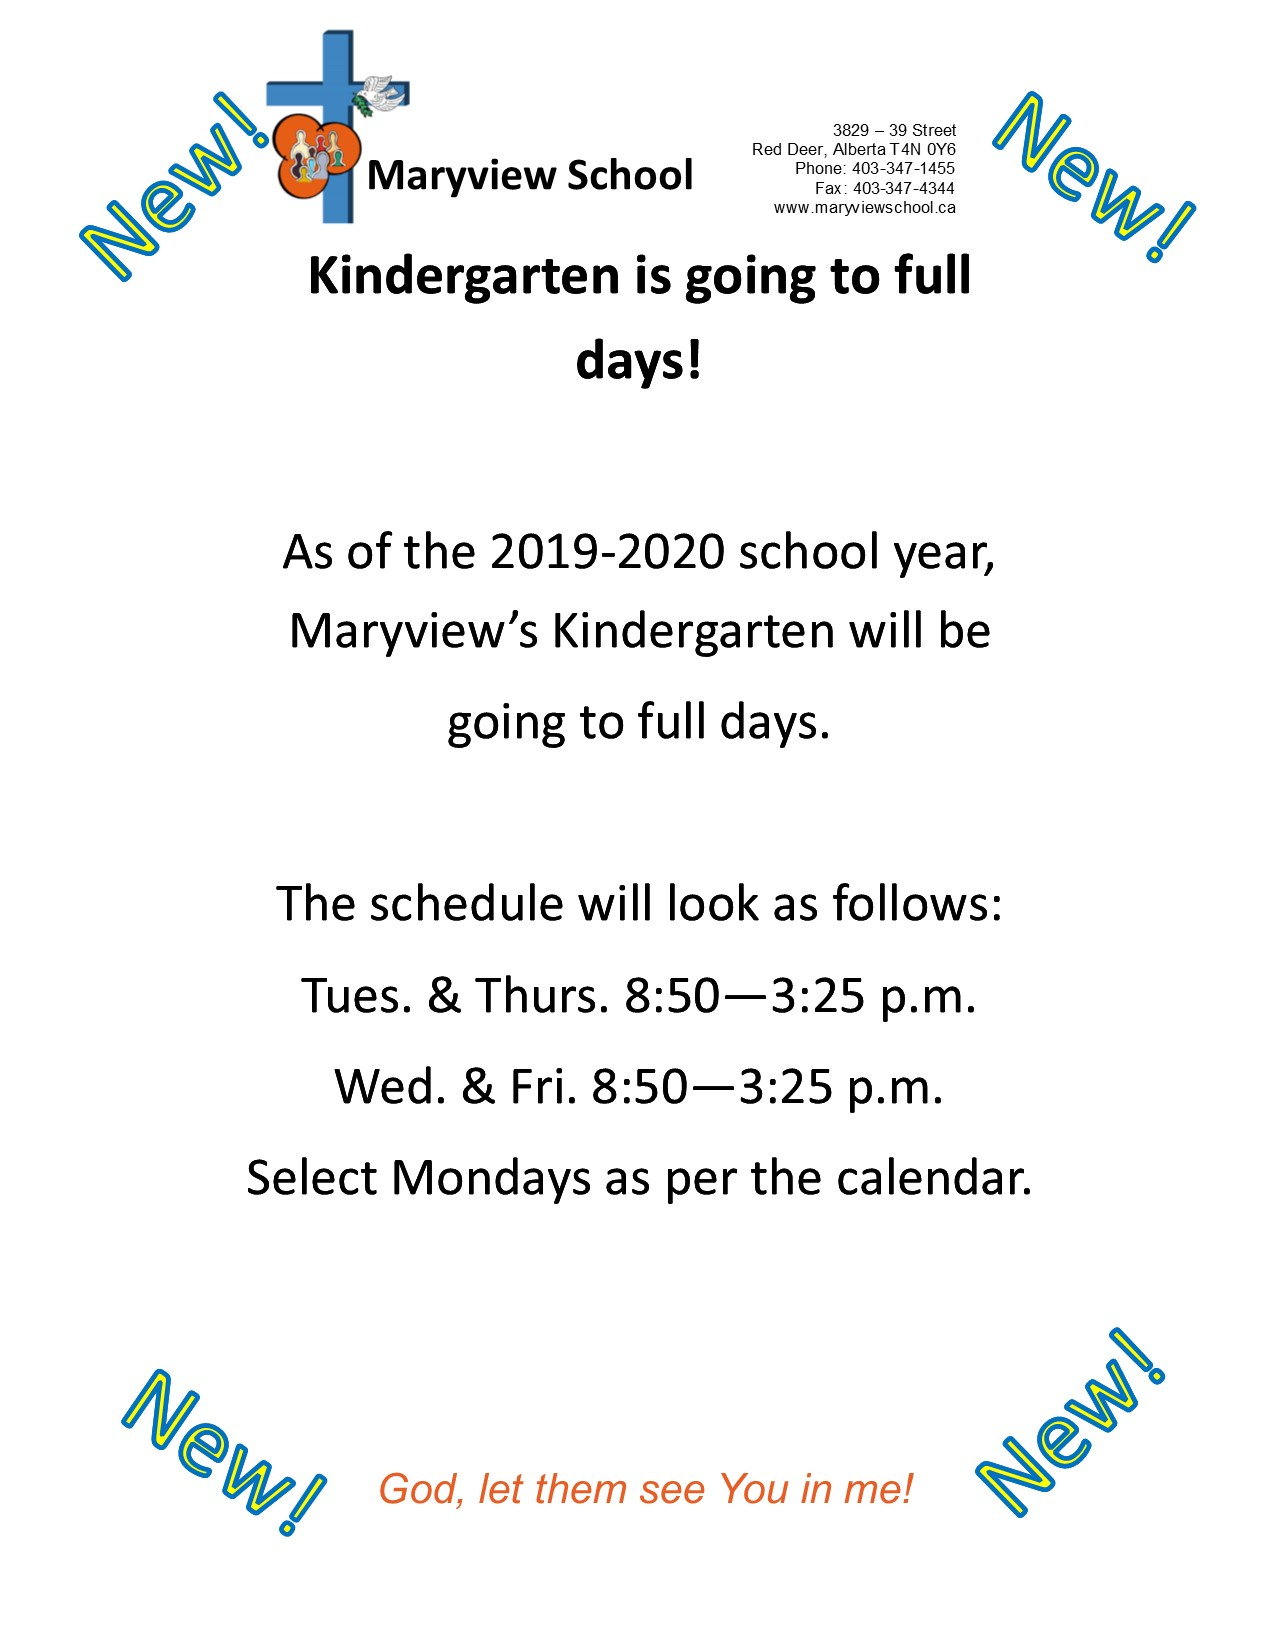 News About Maryview's Kindergarten | Maryview School intended for Red Deer School Calendar